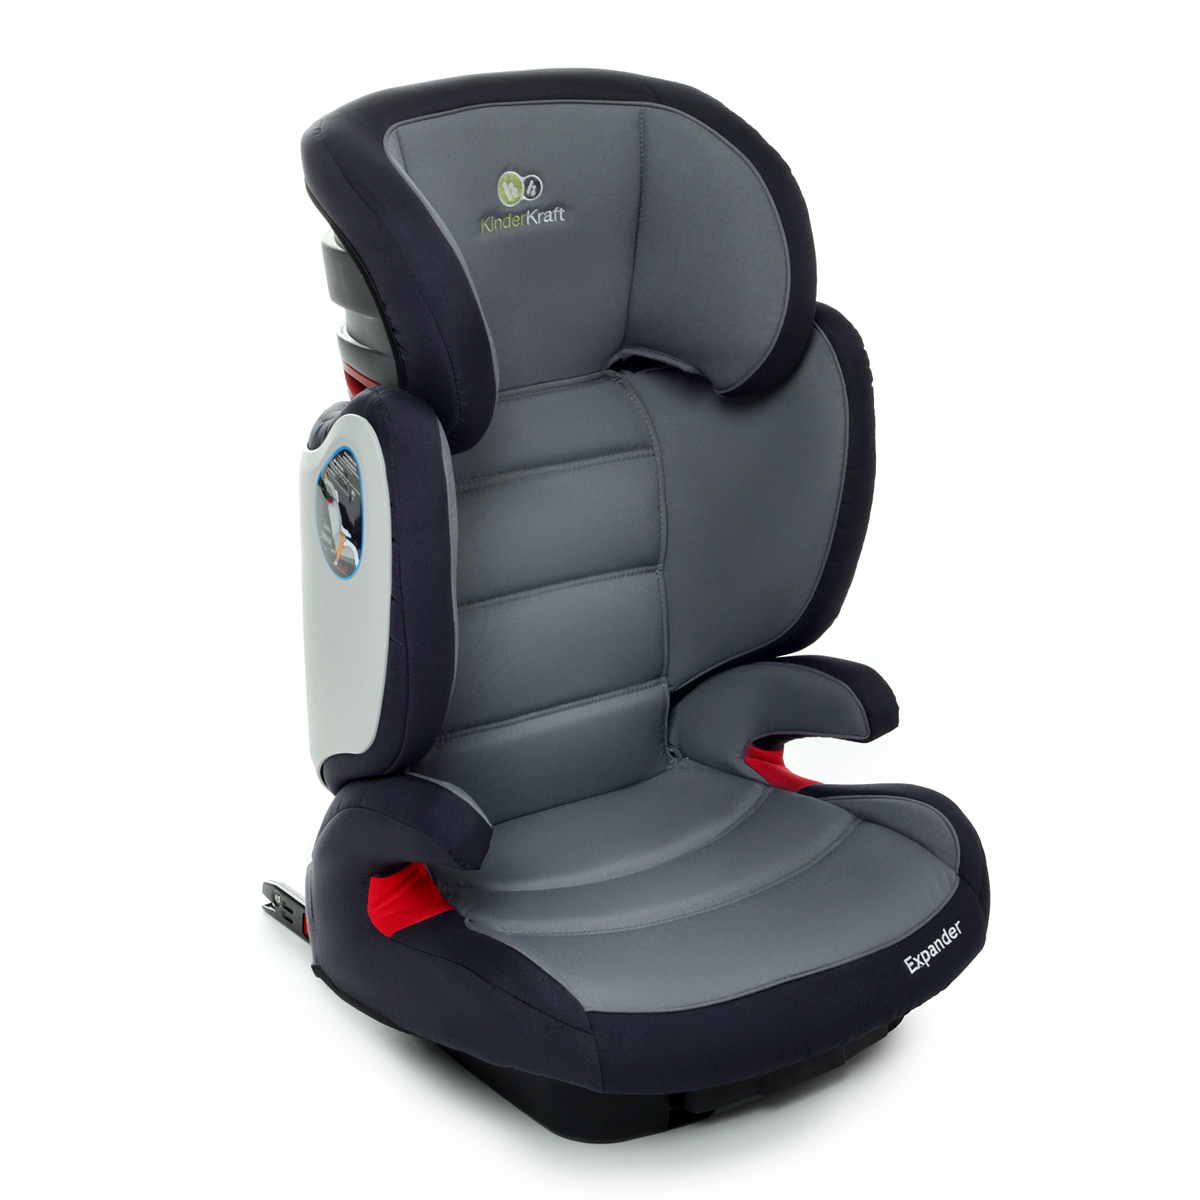 isofix kindersitz 15 36 kg kiwy kindersitz slf23 15 36 kg. Black Bedroom Furniture Sets. Home Design Ideas